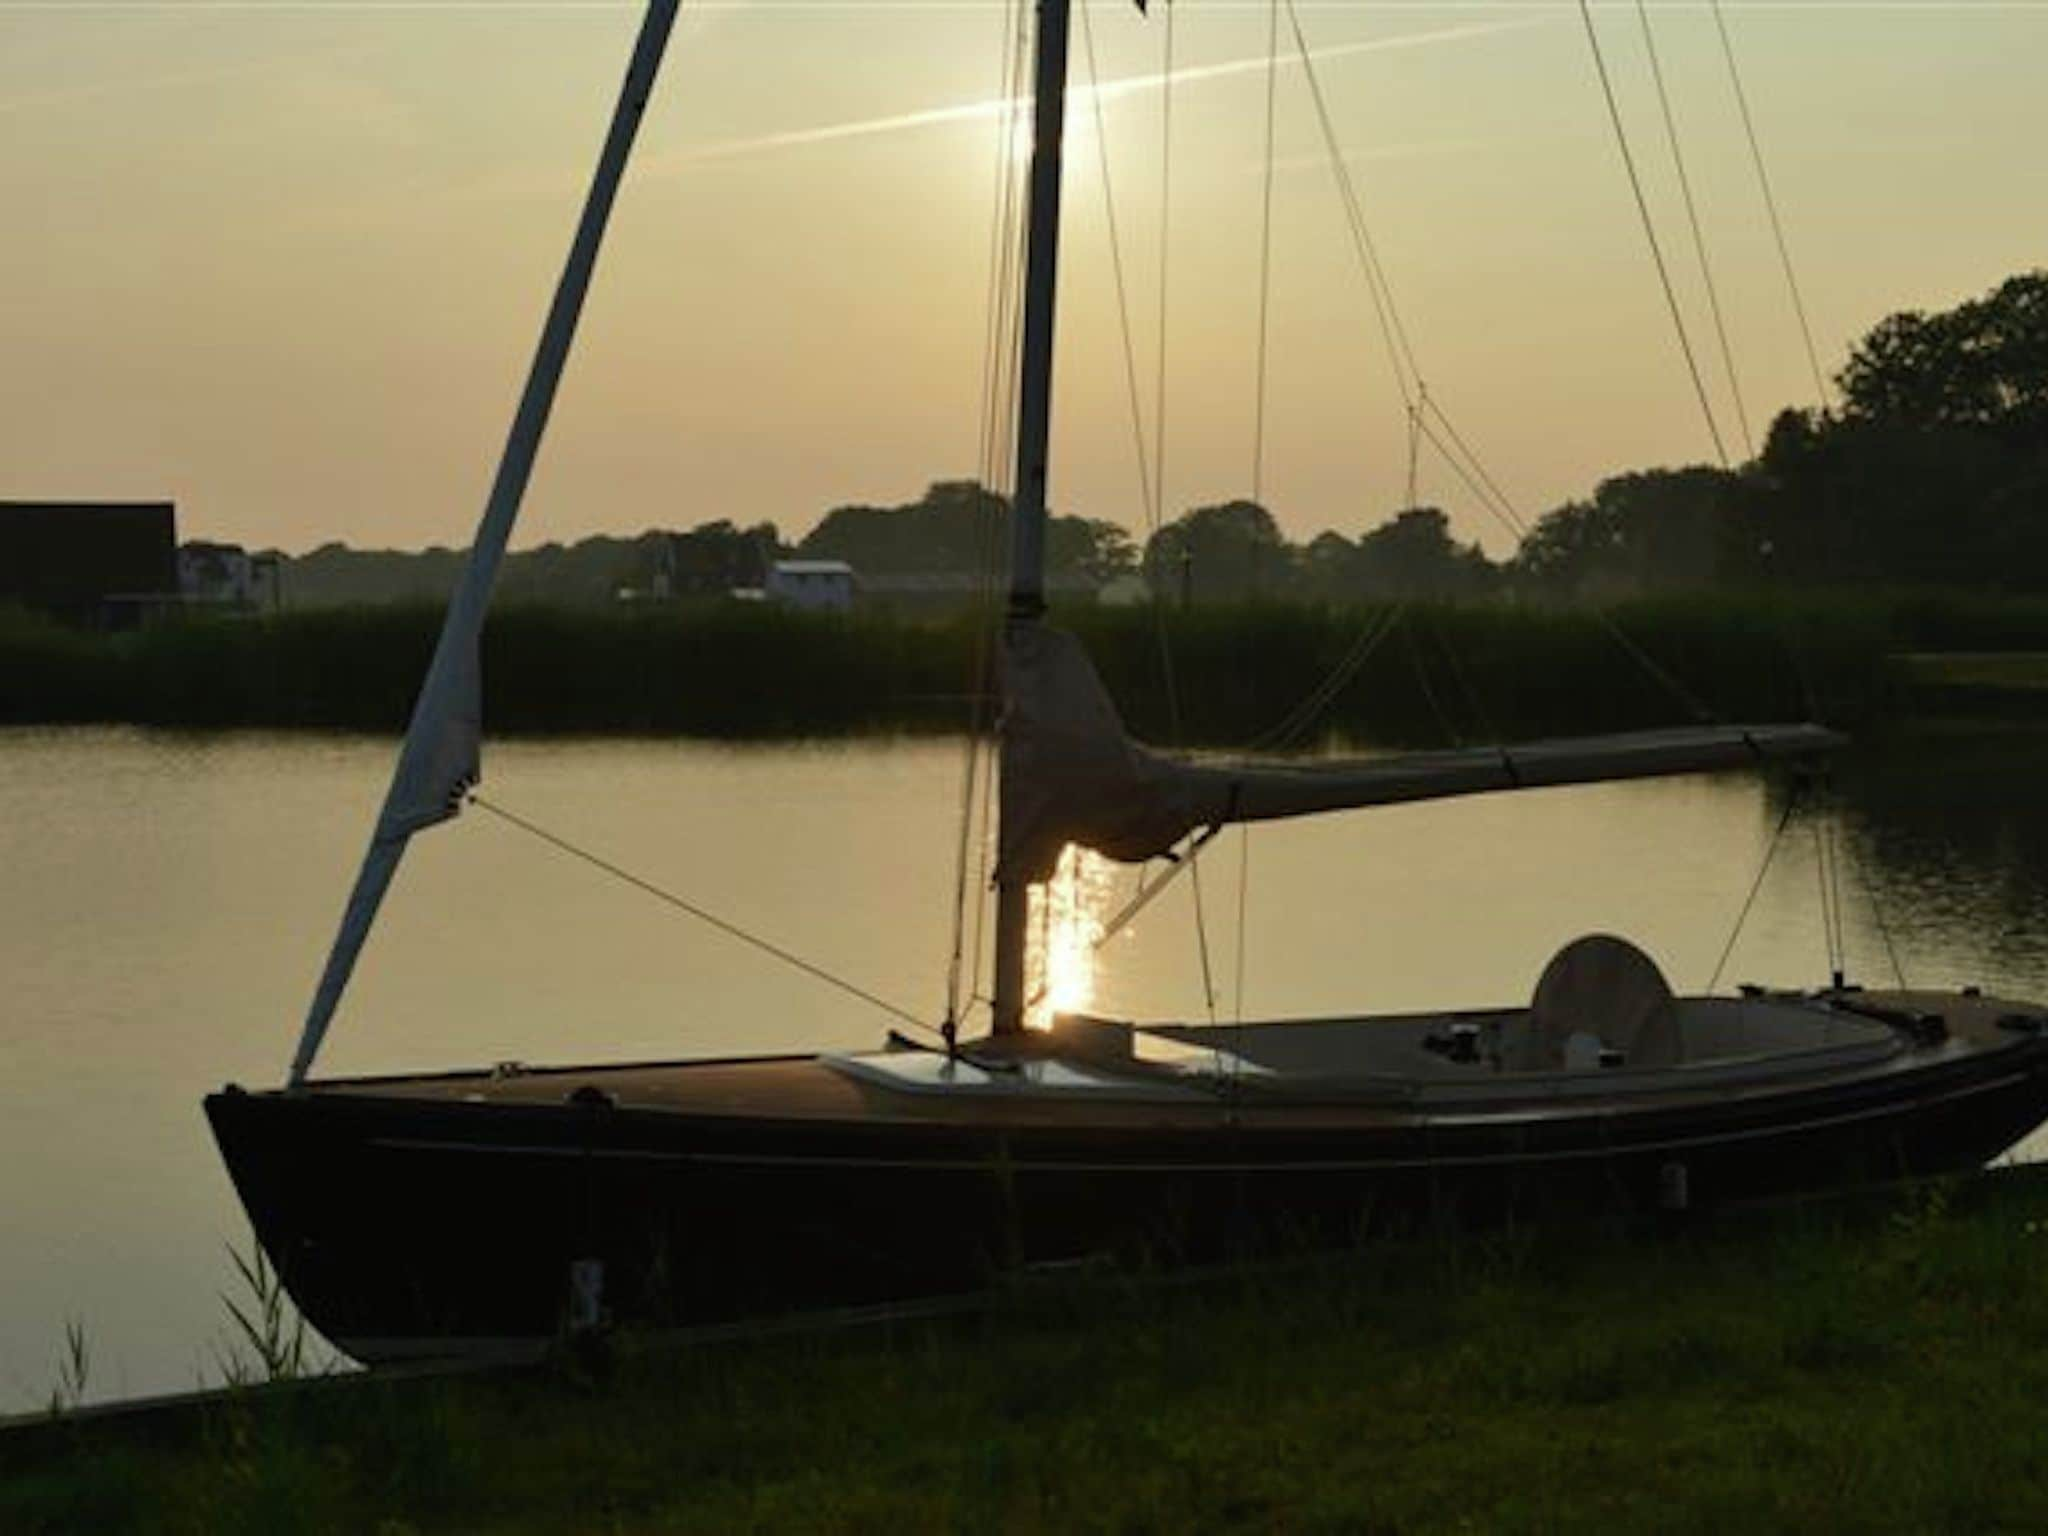 Holland | Overijssel | Holiday home Waterresort Bodelaeke - Ruimte aan 't Water Wellne | all year | AreaSummer1KM